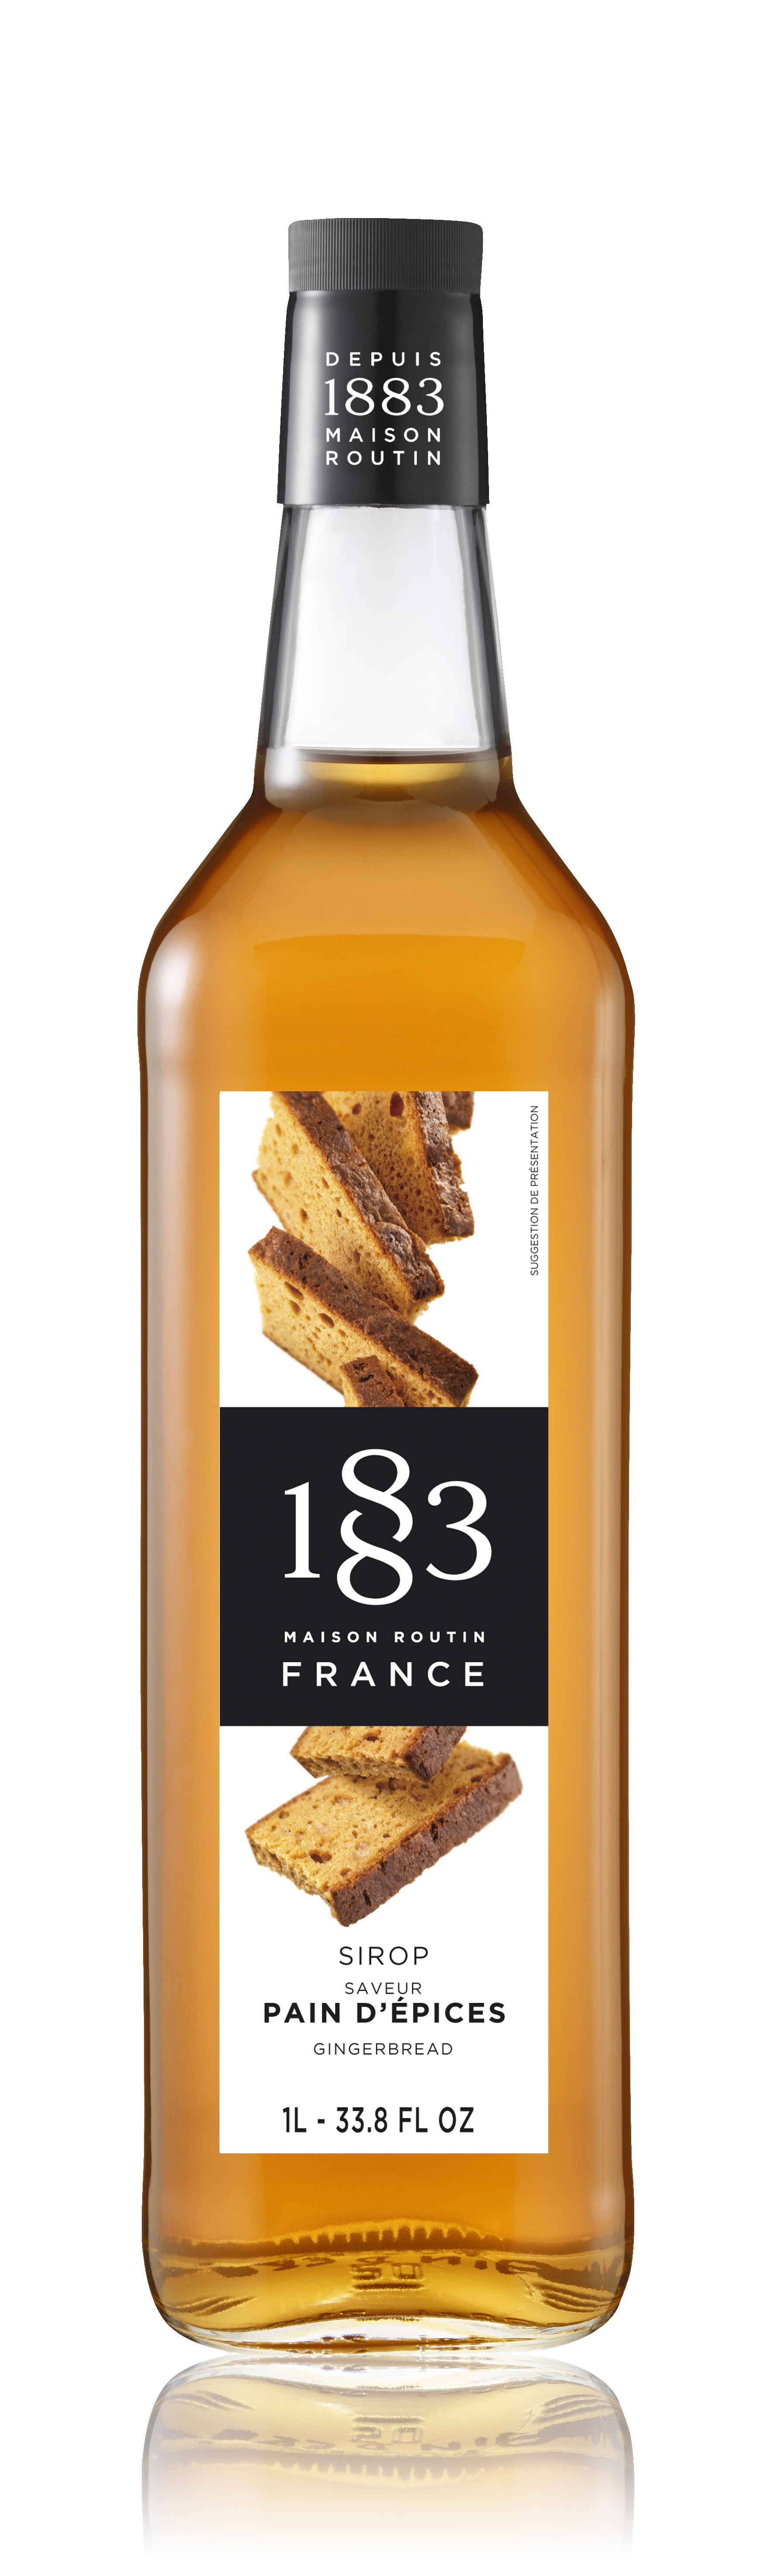 1883 Syrup Gingerbread 1L Glass Bottle